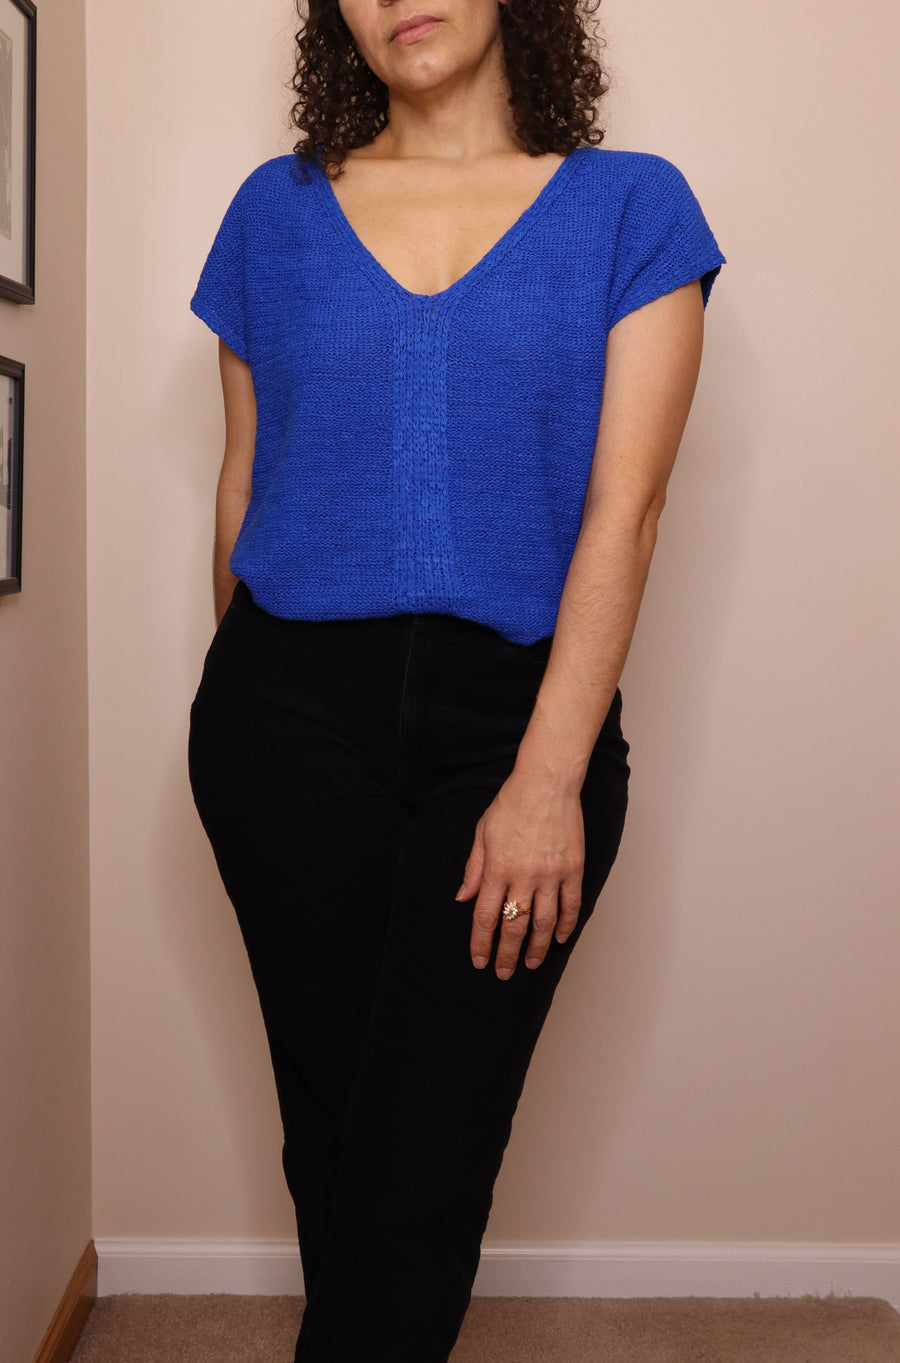 Vintage 80s August Silk Double V-neck Cobalt Blue Sweater with Back Bow